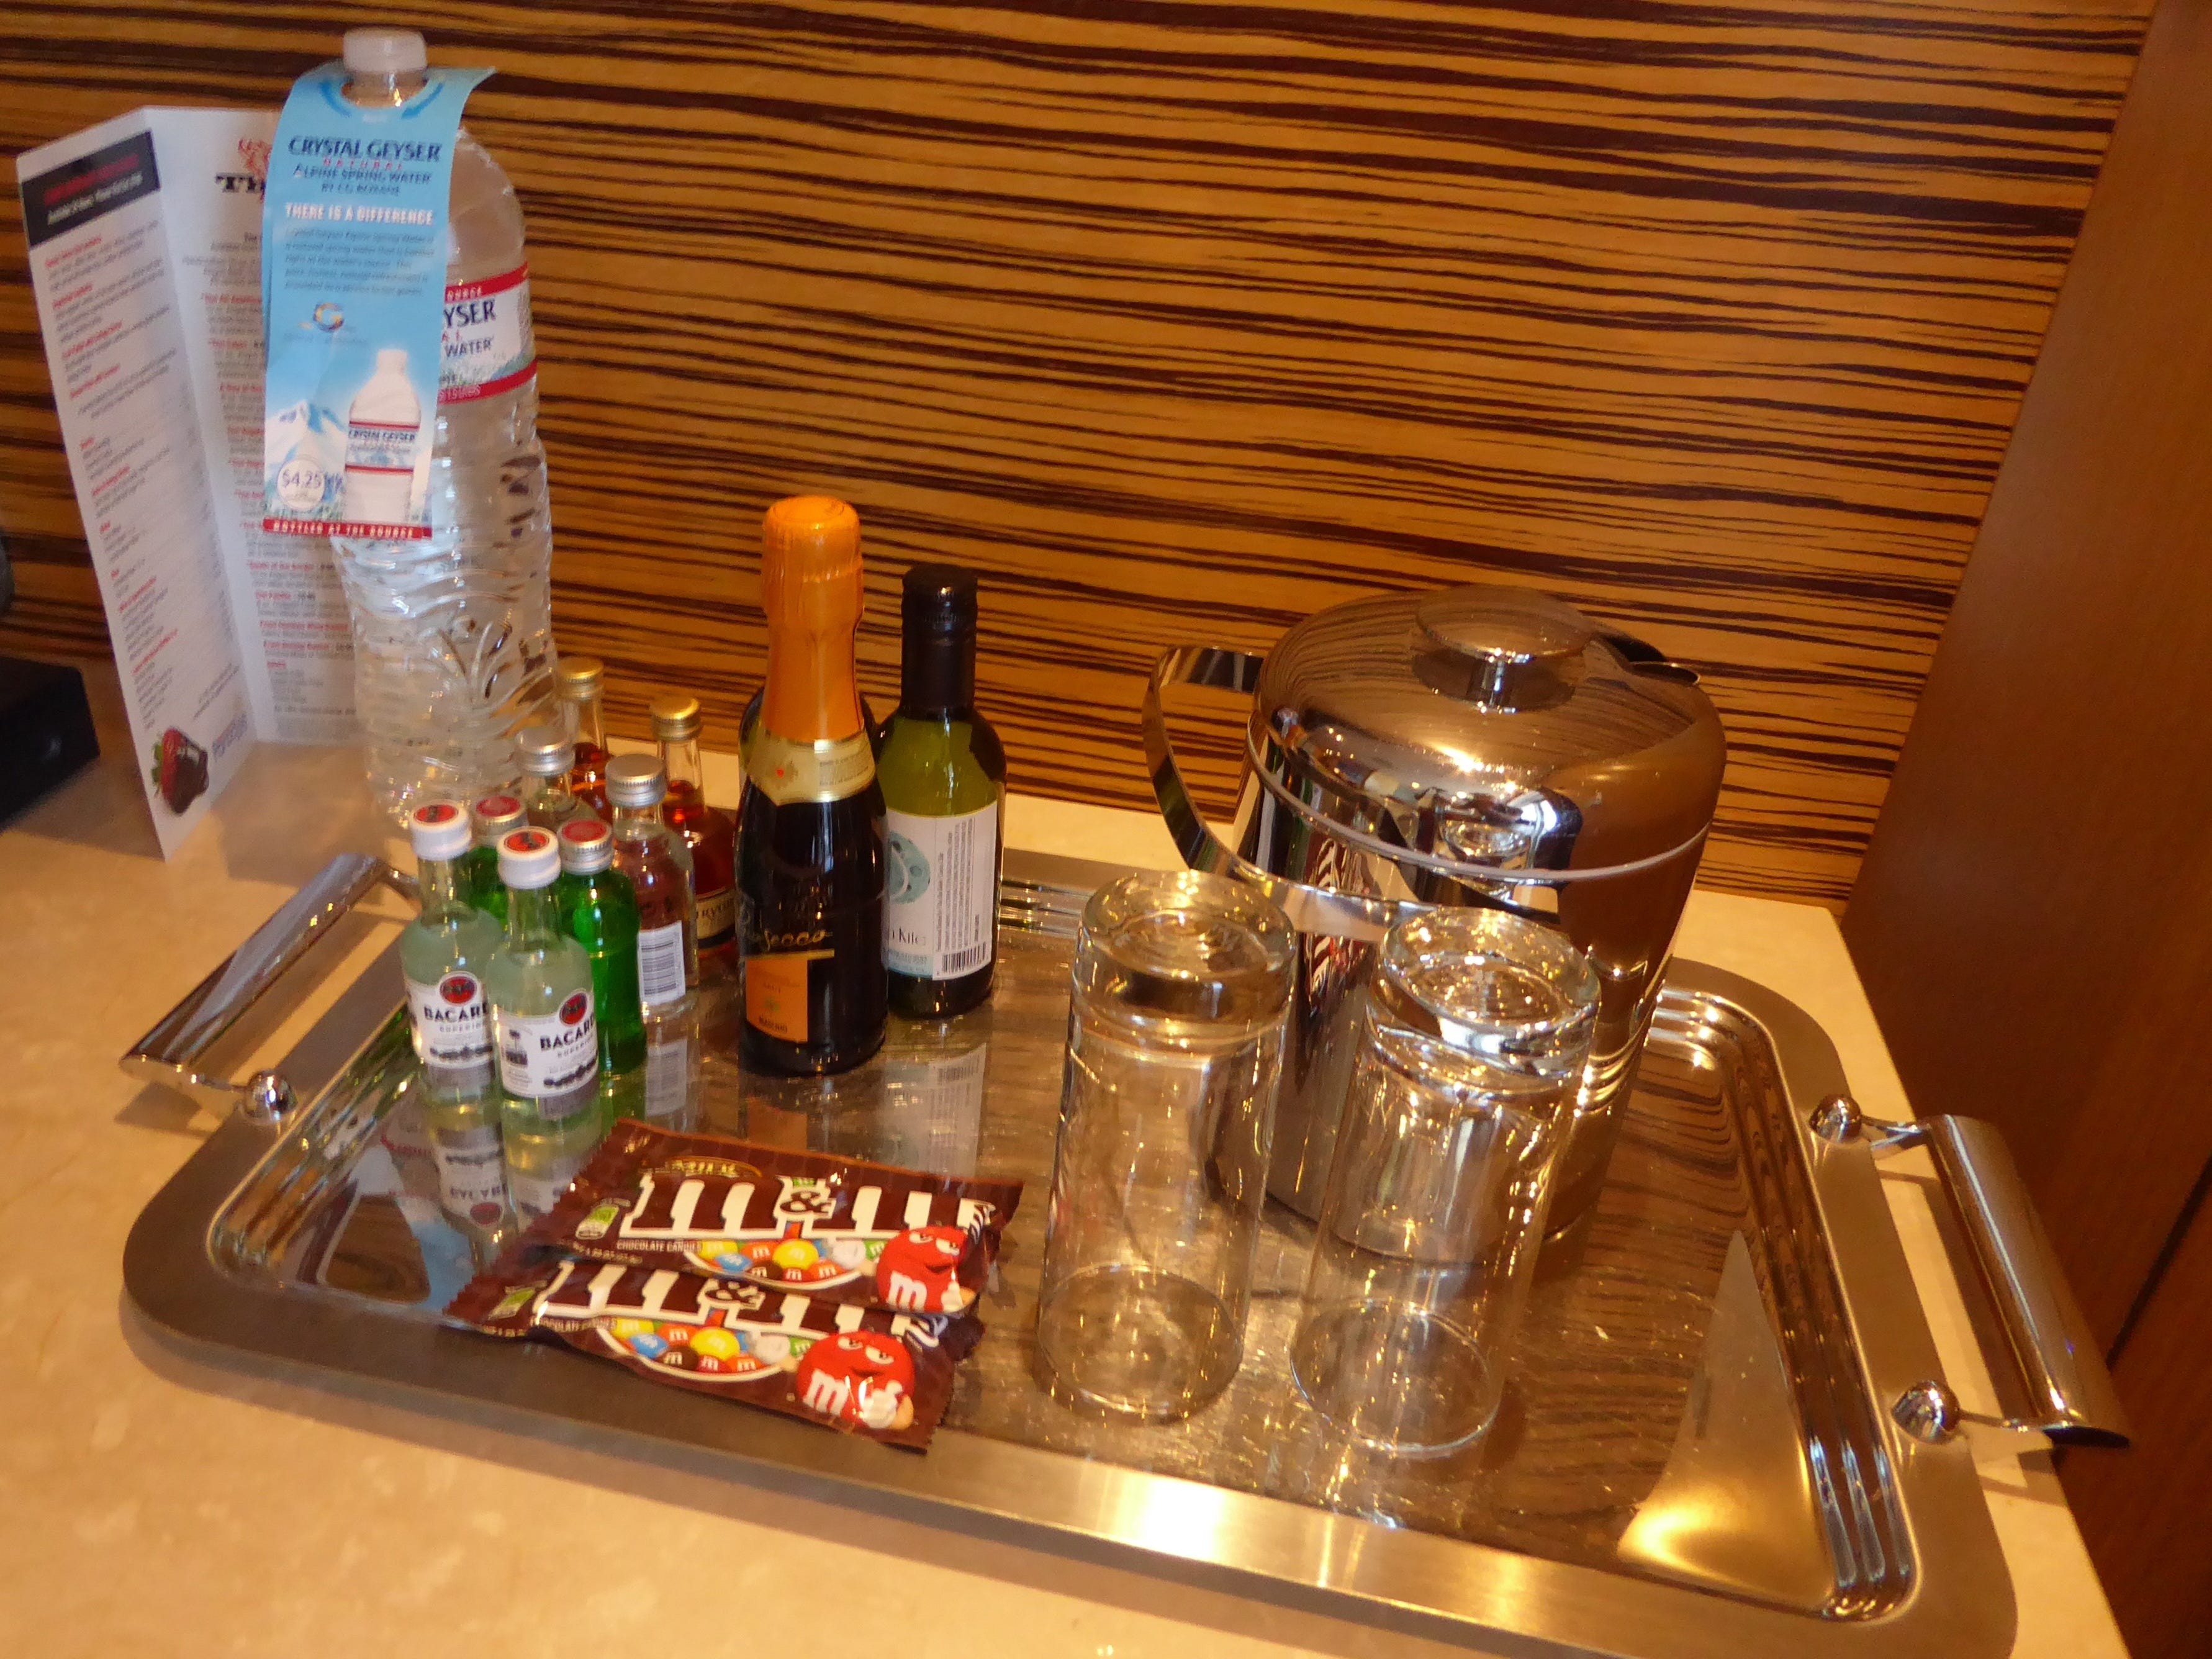 Deluxe Terrace Suites are supplied with beverages and snacks.